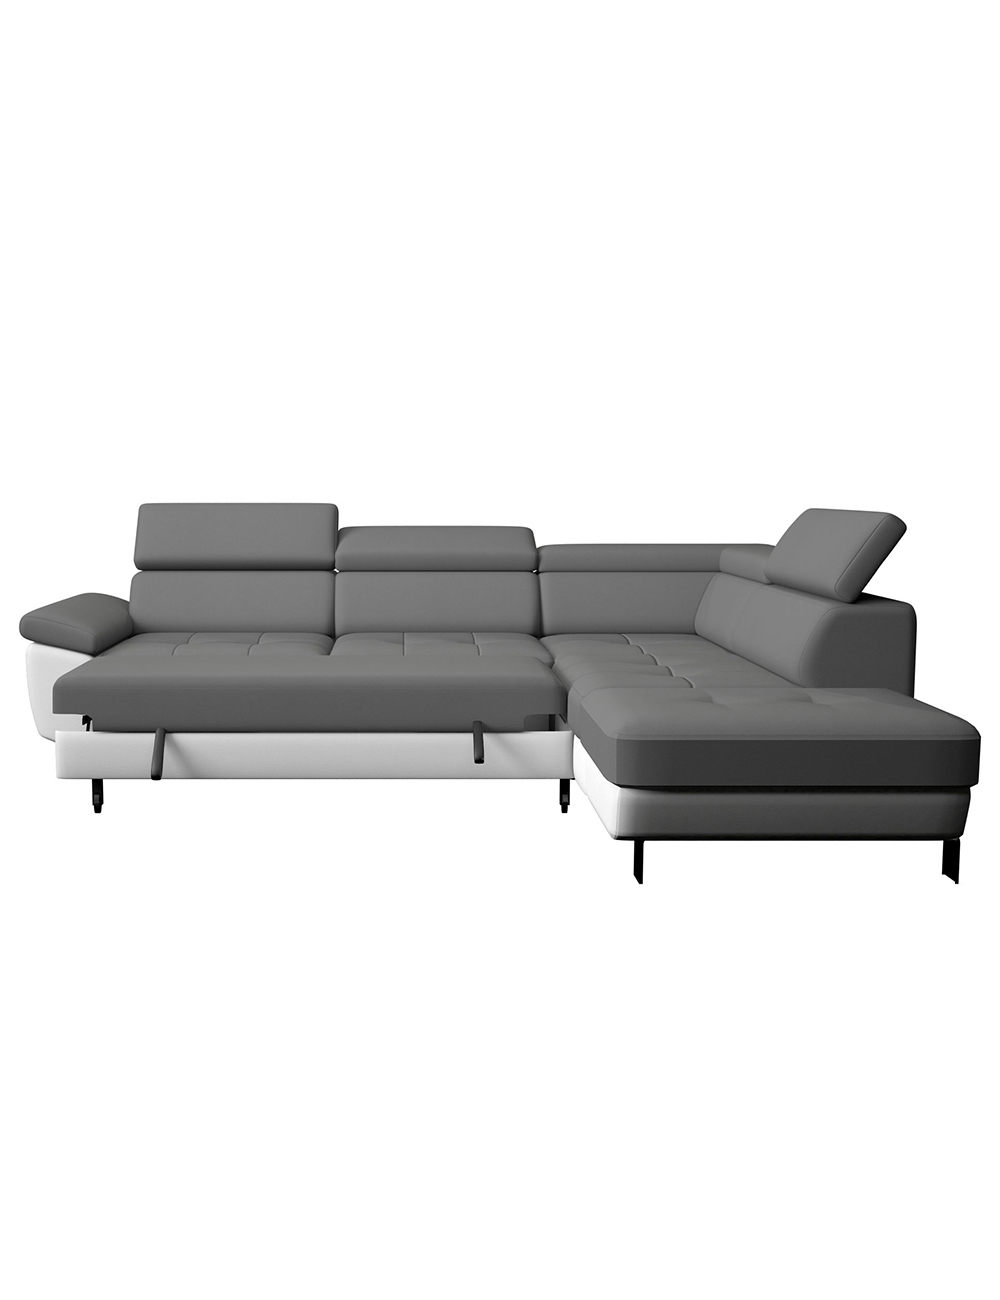 schlaf ecksofa kate grau weiss. Black Bedroom Furniture Sets. Home Design Ideas